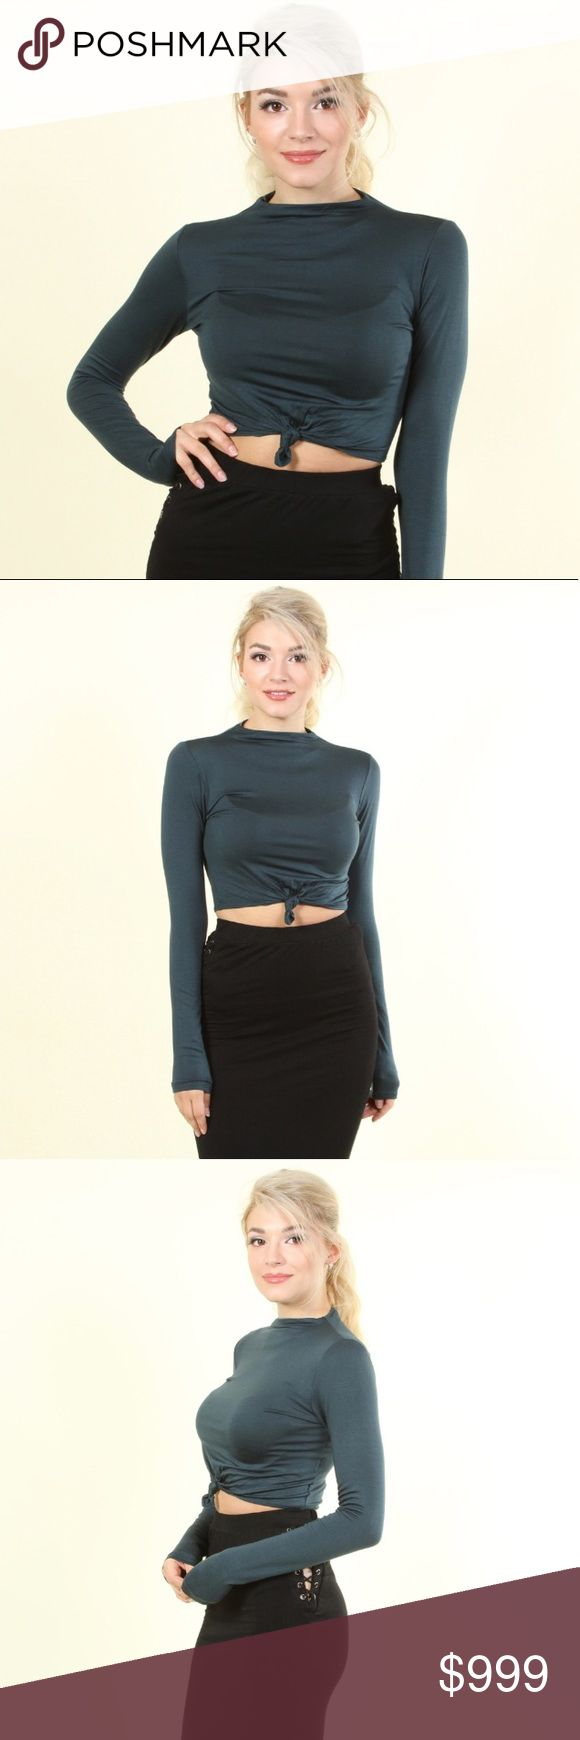 **COMING SOON** Knotted Crop Top The color is dark teal.  Super soft solid rayon jersey long sleeve crop top with tie-knot center and high neck. 96% rayon, 4% spandex.   Pair this with a high waisted skirt or jeans. Super cute for winter ladies!! Tops Crop Tops